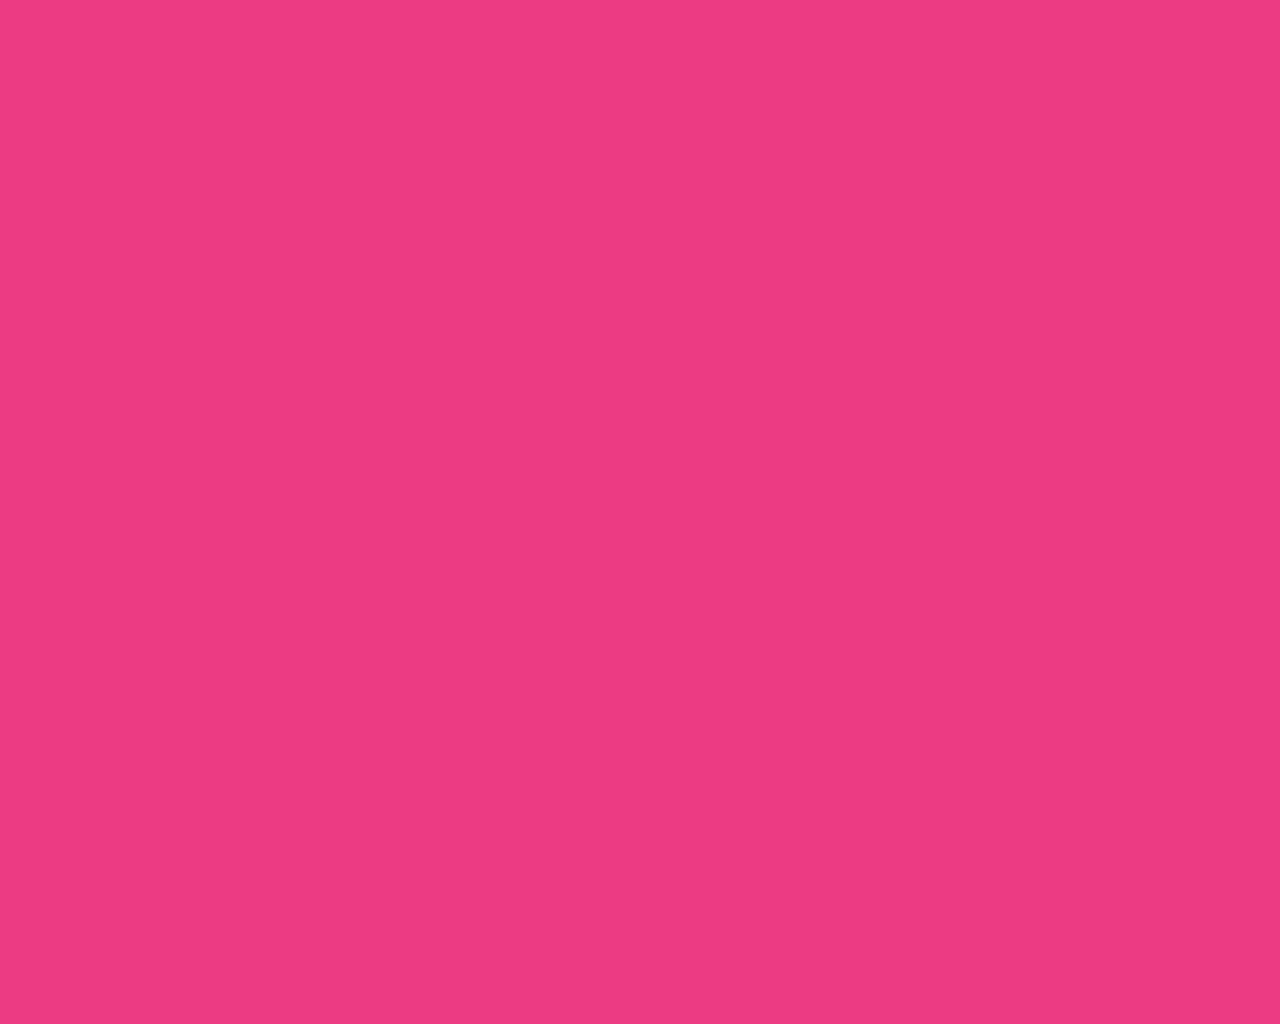 1280x1024 Cerise Pink Solid Color Background